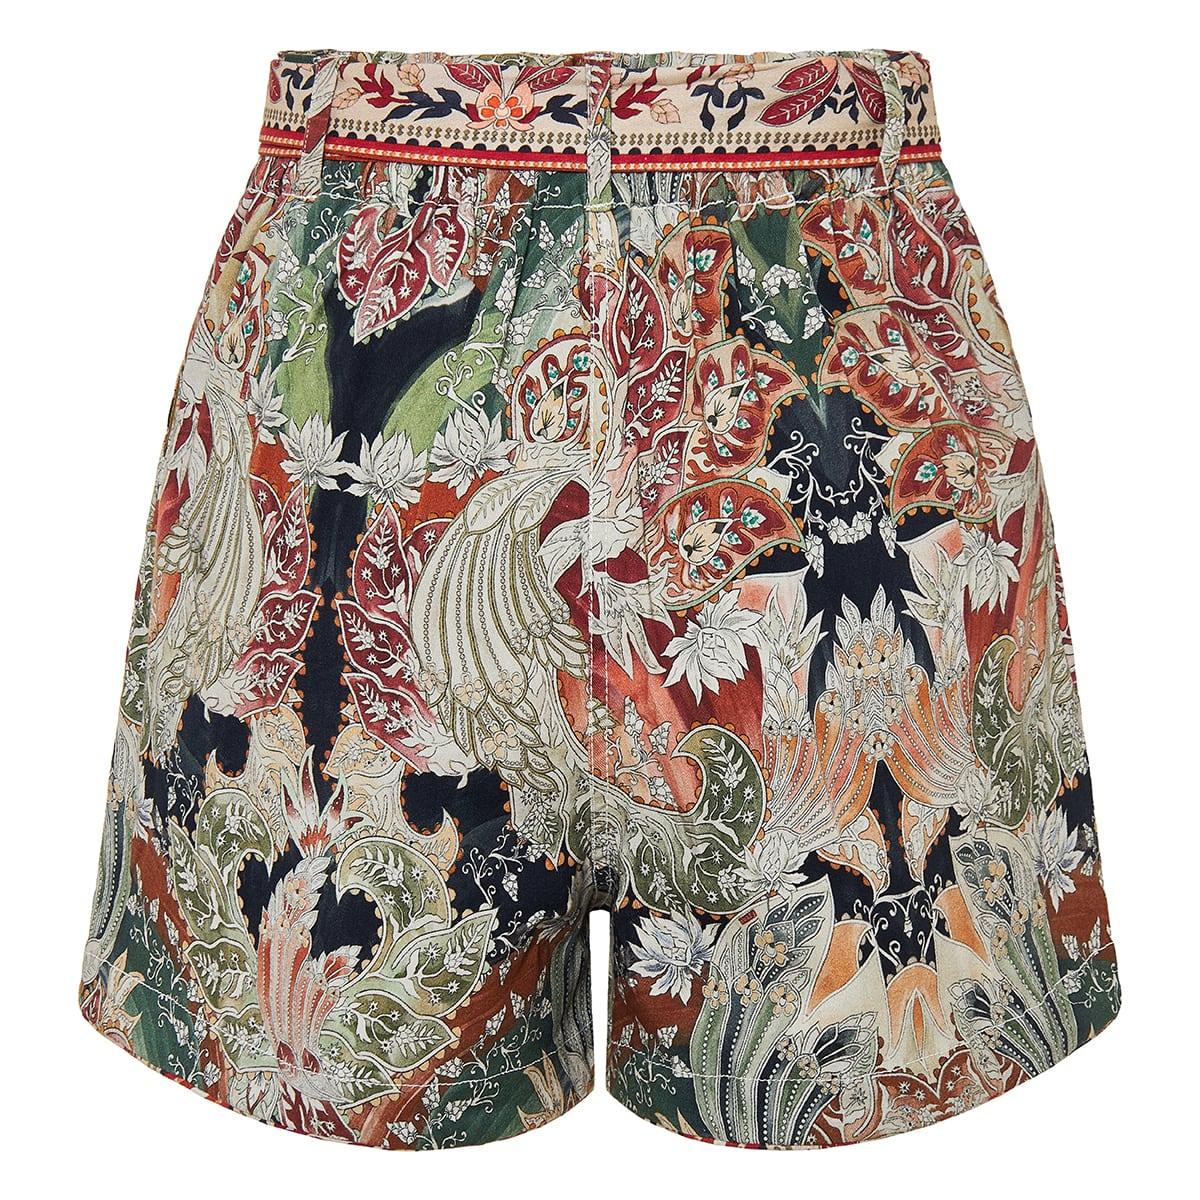 Lwin printed belted shorts